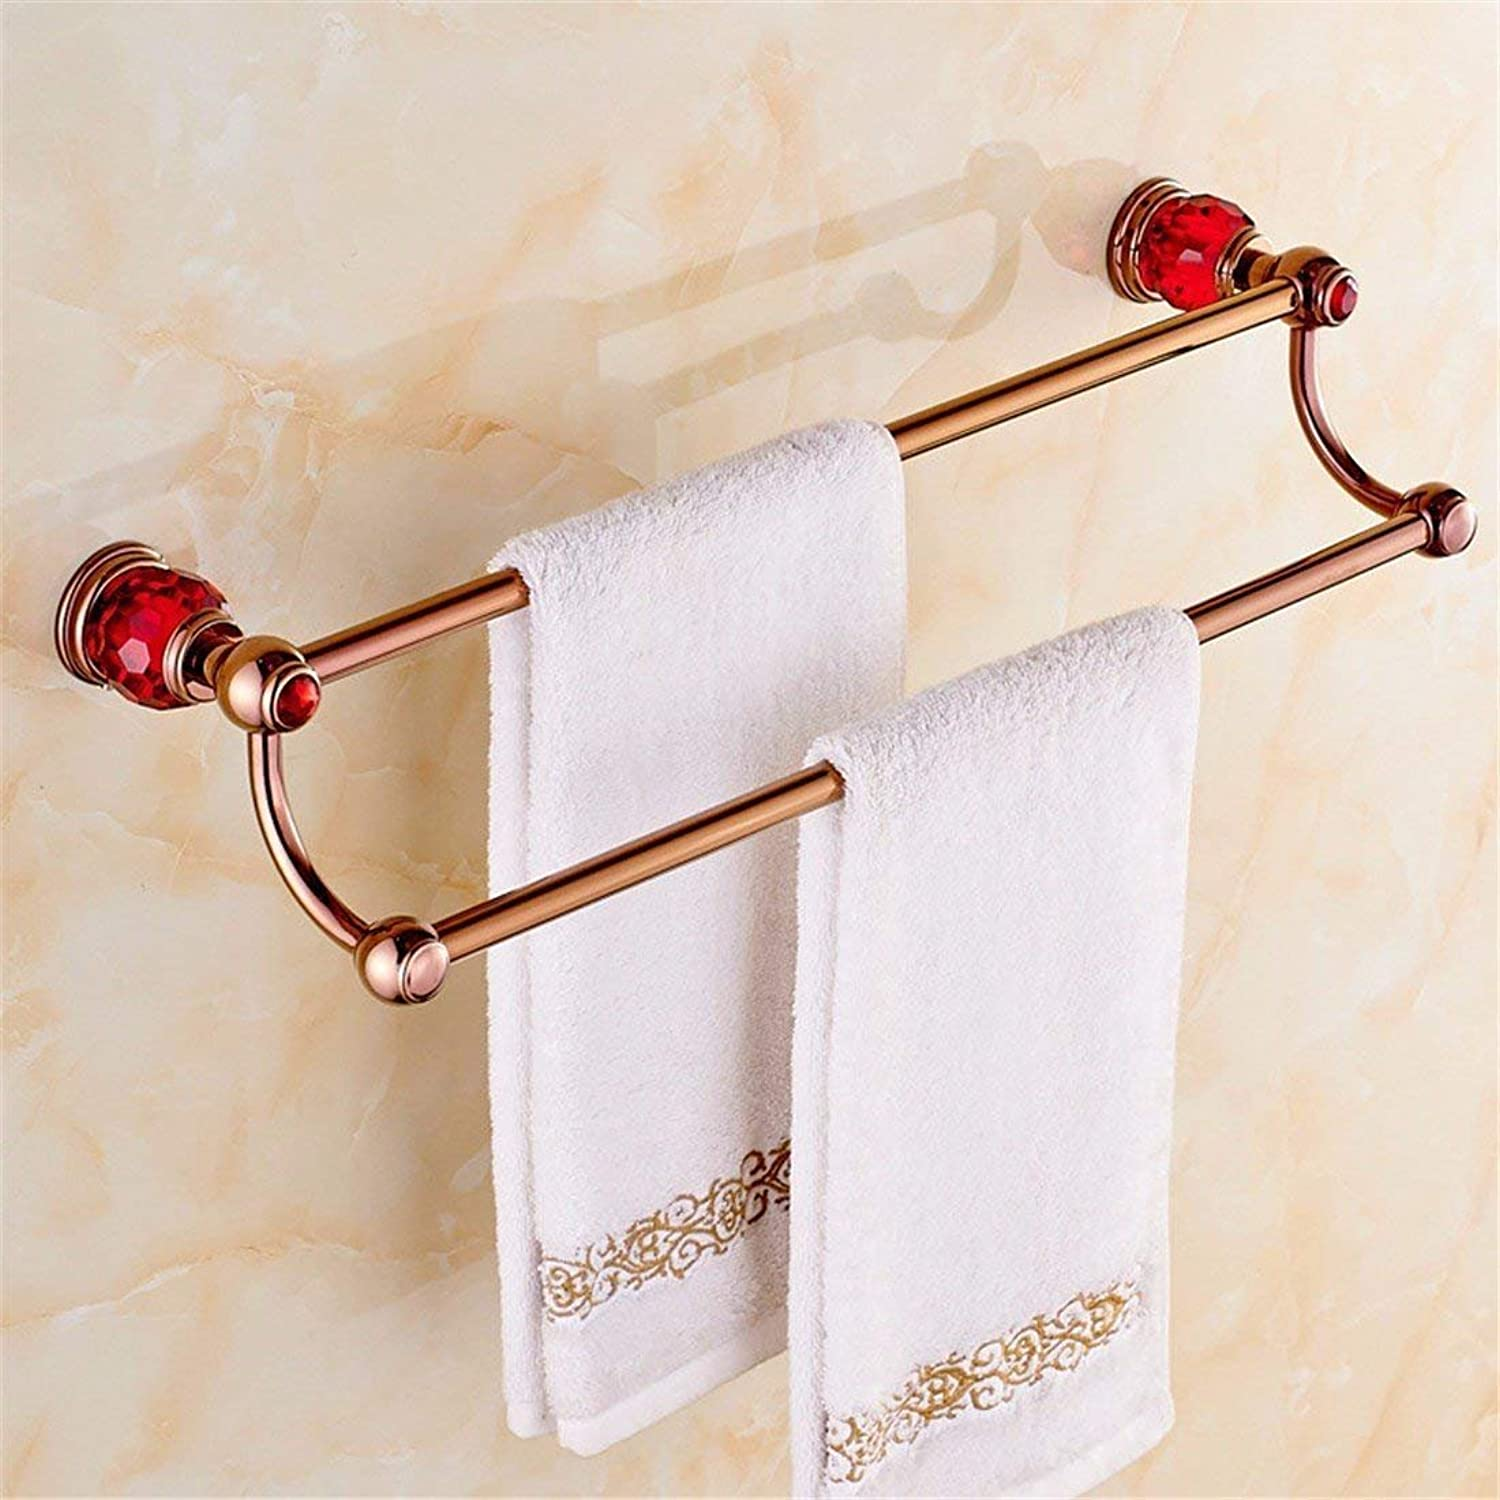 All Christmas red and Pink gold, Base in Crystal, Accessories for Bathroom, WC, Toilet Paper Rack Brush Rack,Double Pole